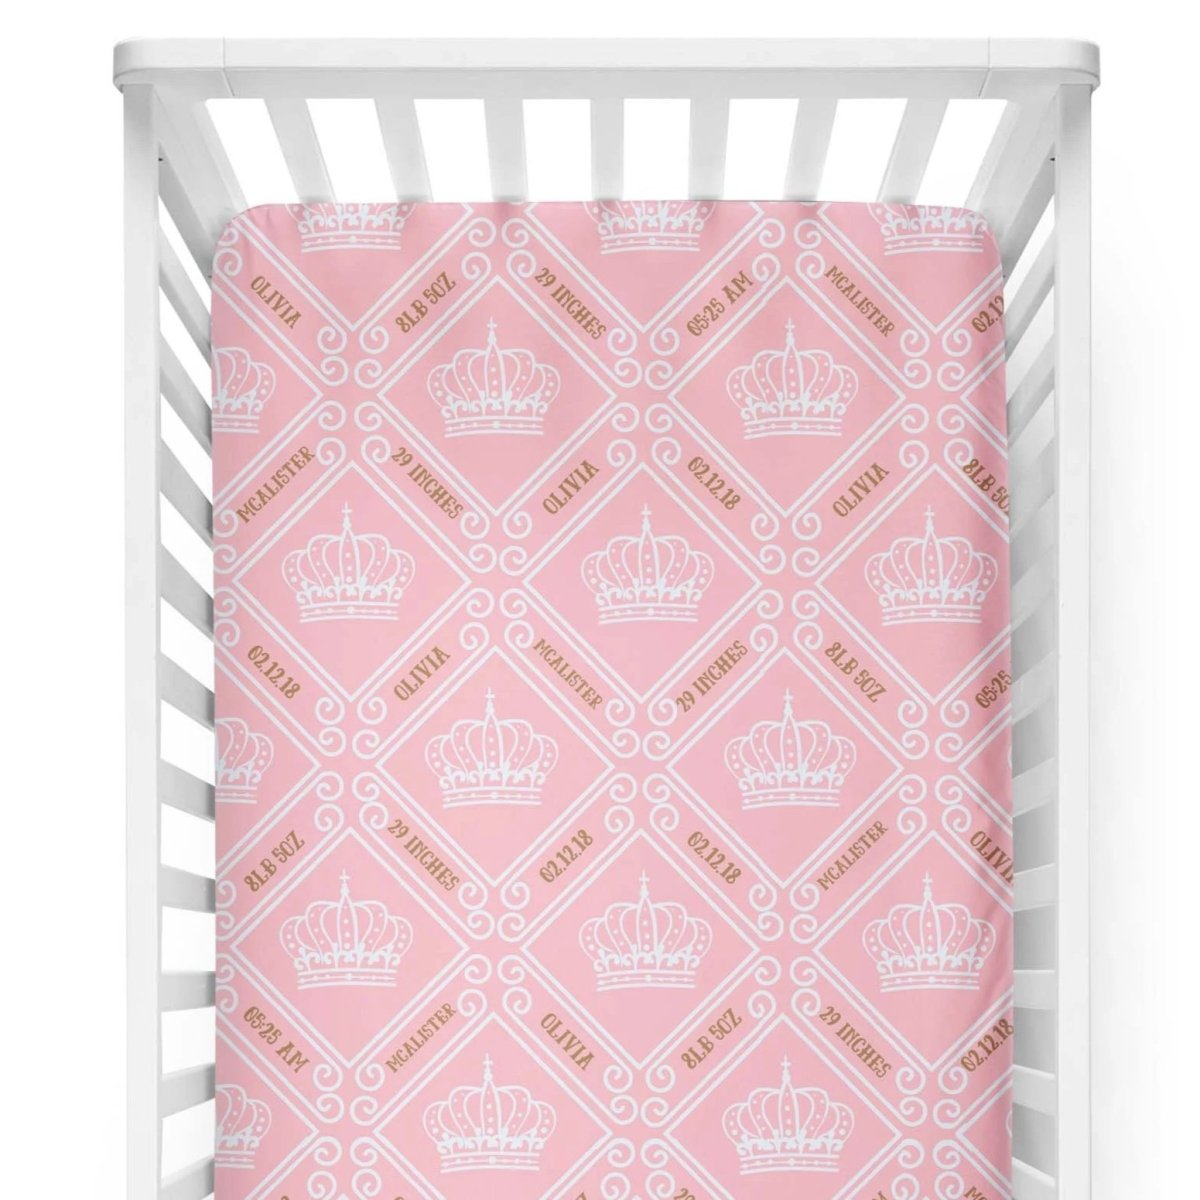 crib Royal Crown Pink - Birth Stats and Name - Personalized Fitted Crib Sheet - ZERO TO THREE CLUB crib